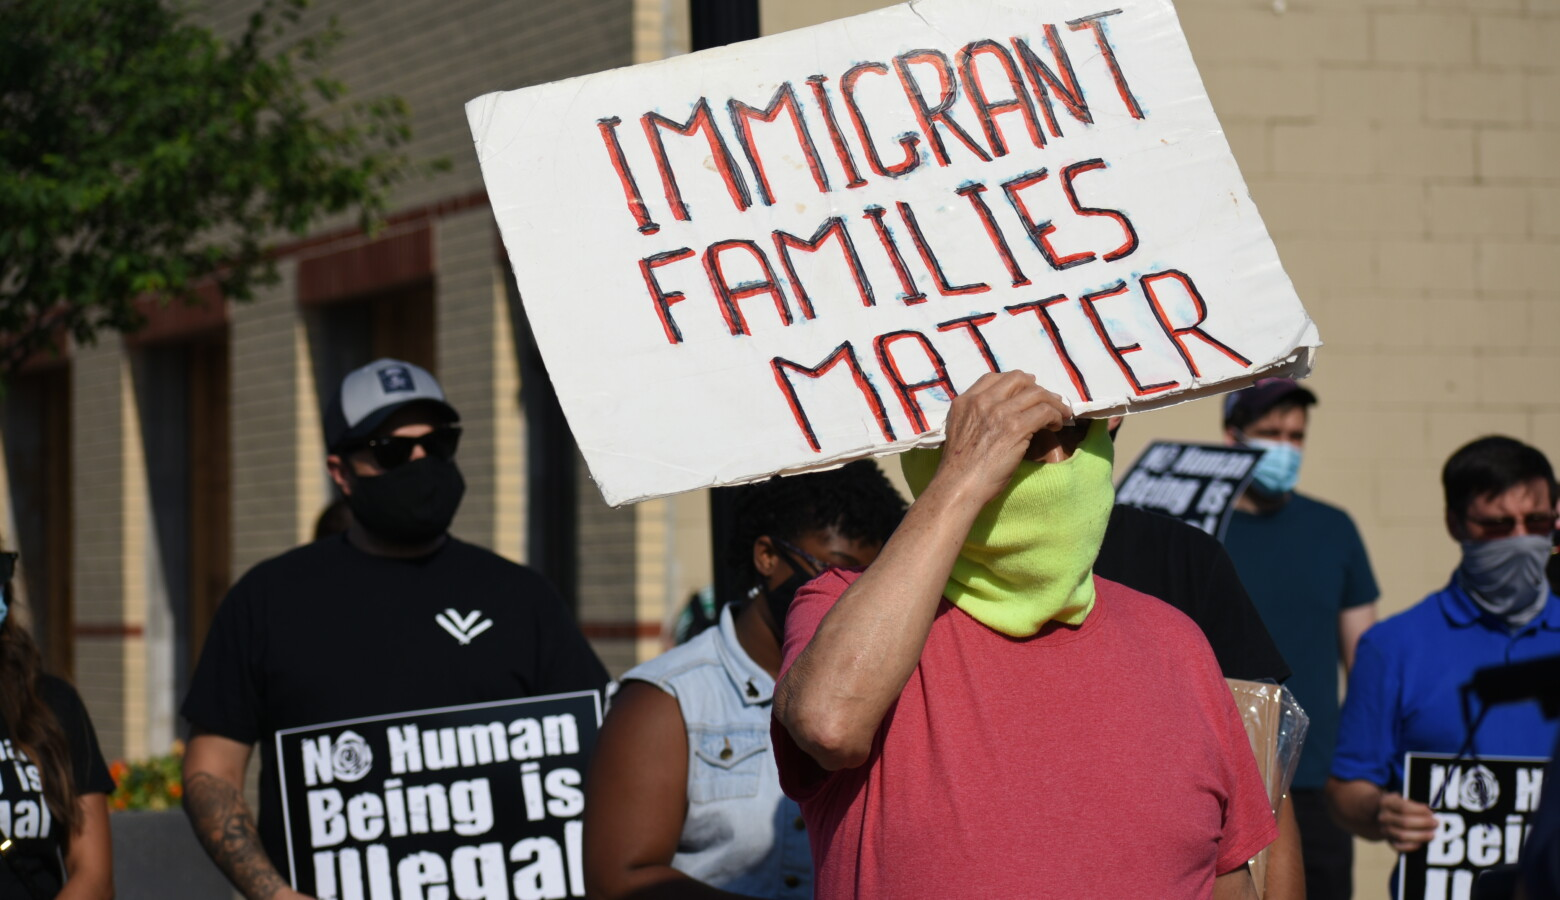 Activists march at a South Bend rally in June 2020 after the U.S. Supreme Court blocked a Trump administration attempt to end the Deferred Action for Childhood Arrivals (DACA) program. (Justin Hicks/IPB News)